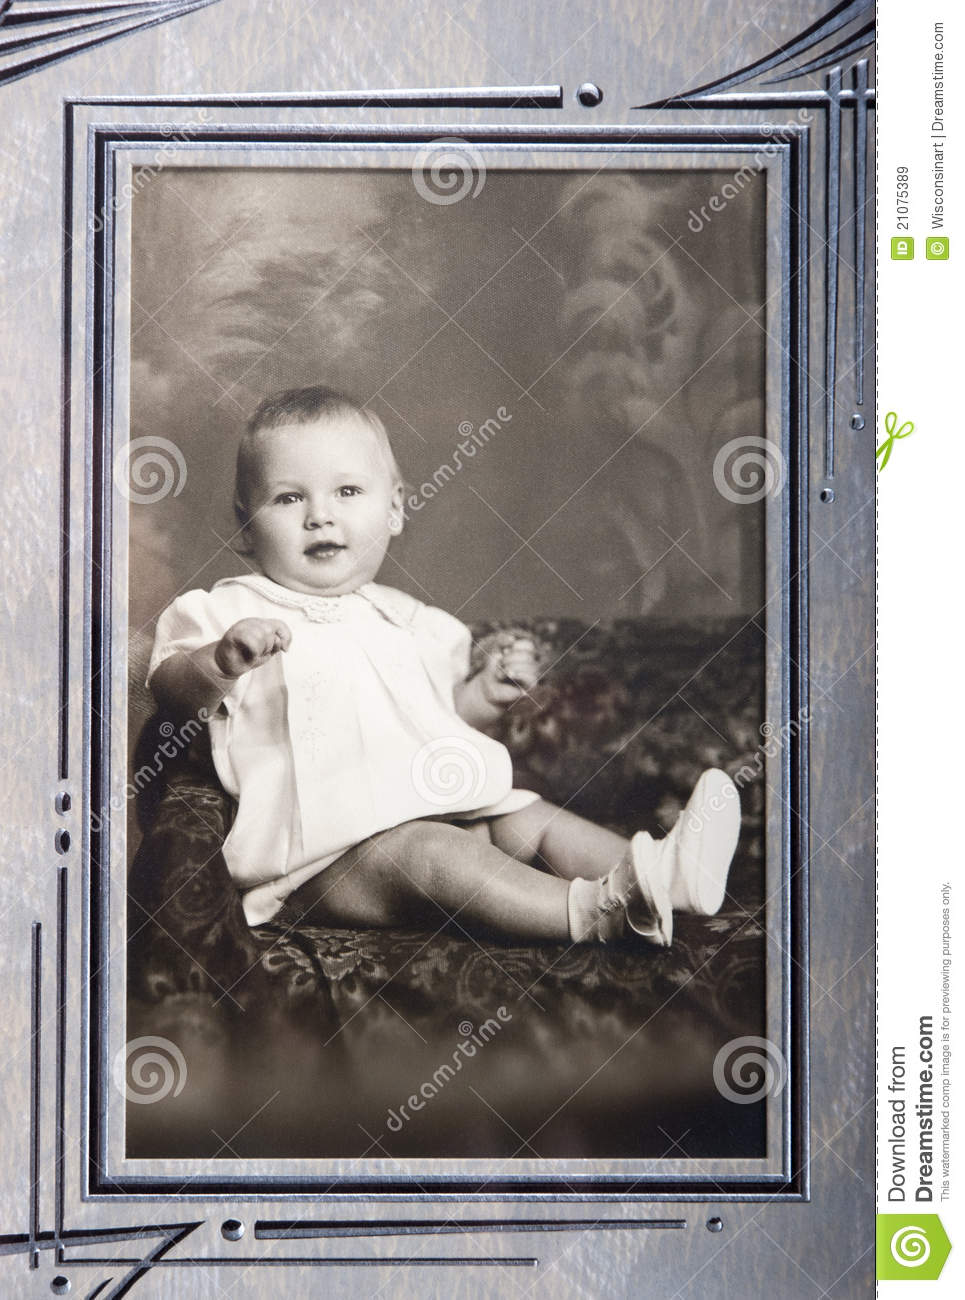 Old vintage photo of young baby girl portrait stock image image of